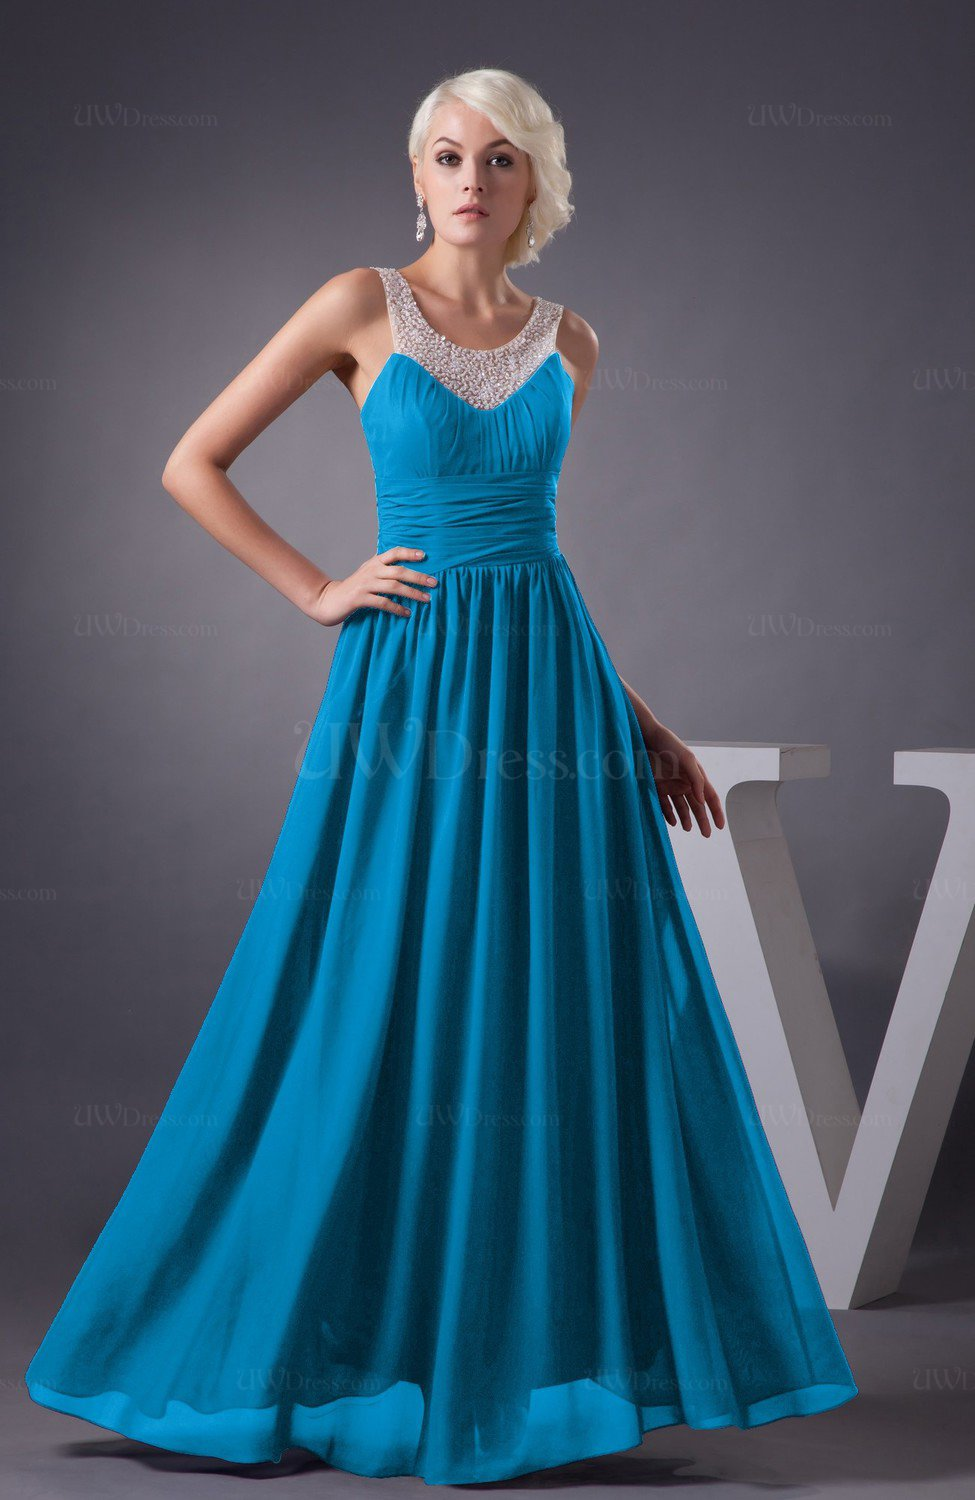 Cornflower Blue Chiffon Bridesmaid Dress Country Chic Summer Simple Plus Size Western